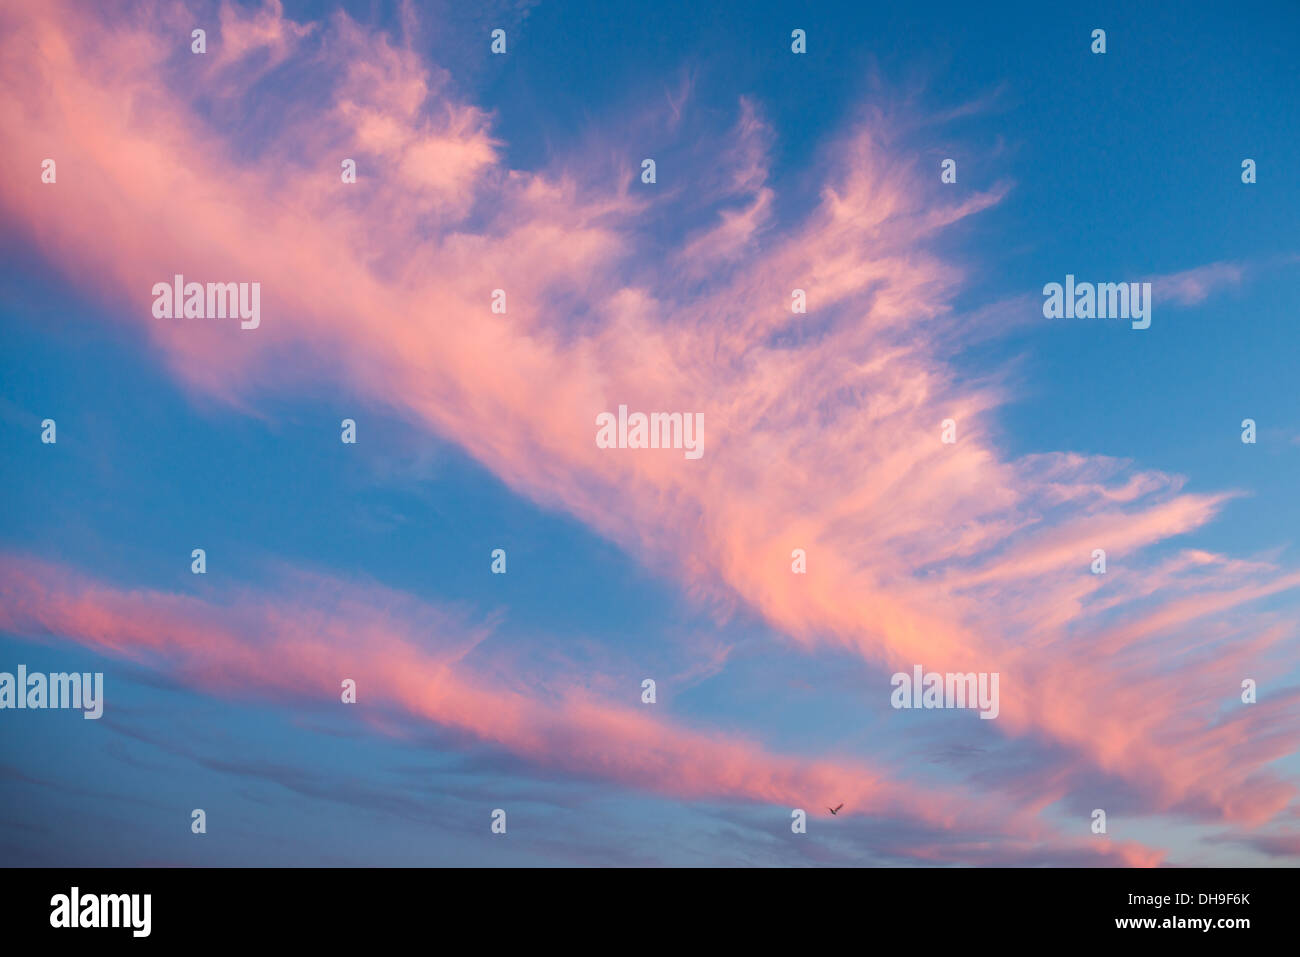 Wispy Pink Clouds - Stock Image